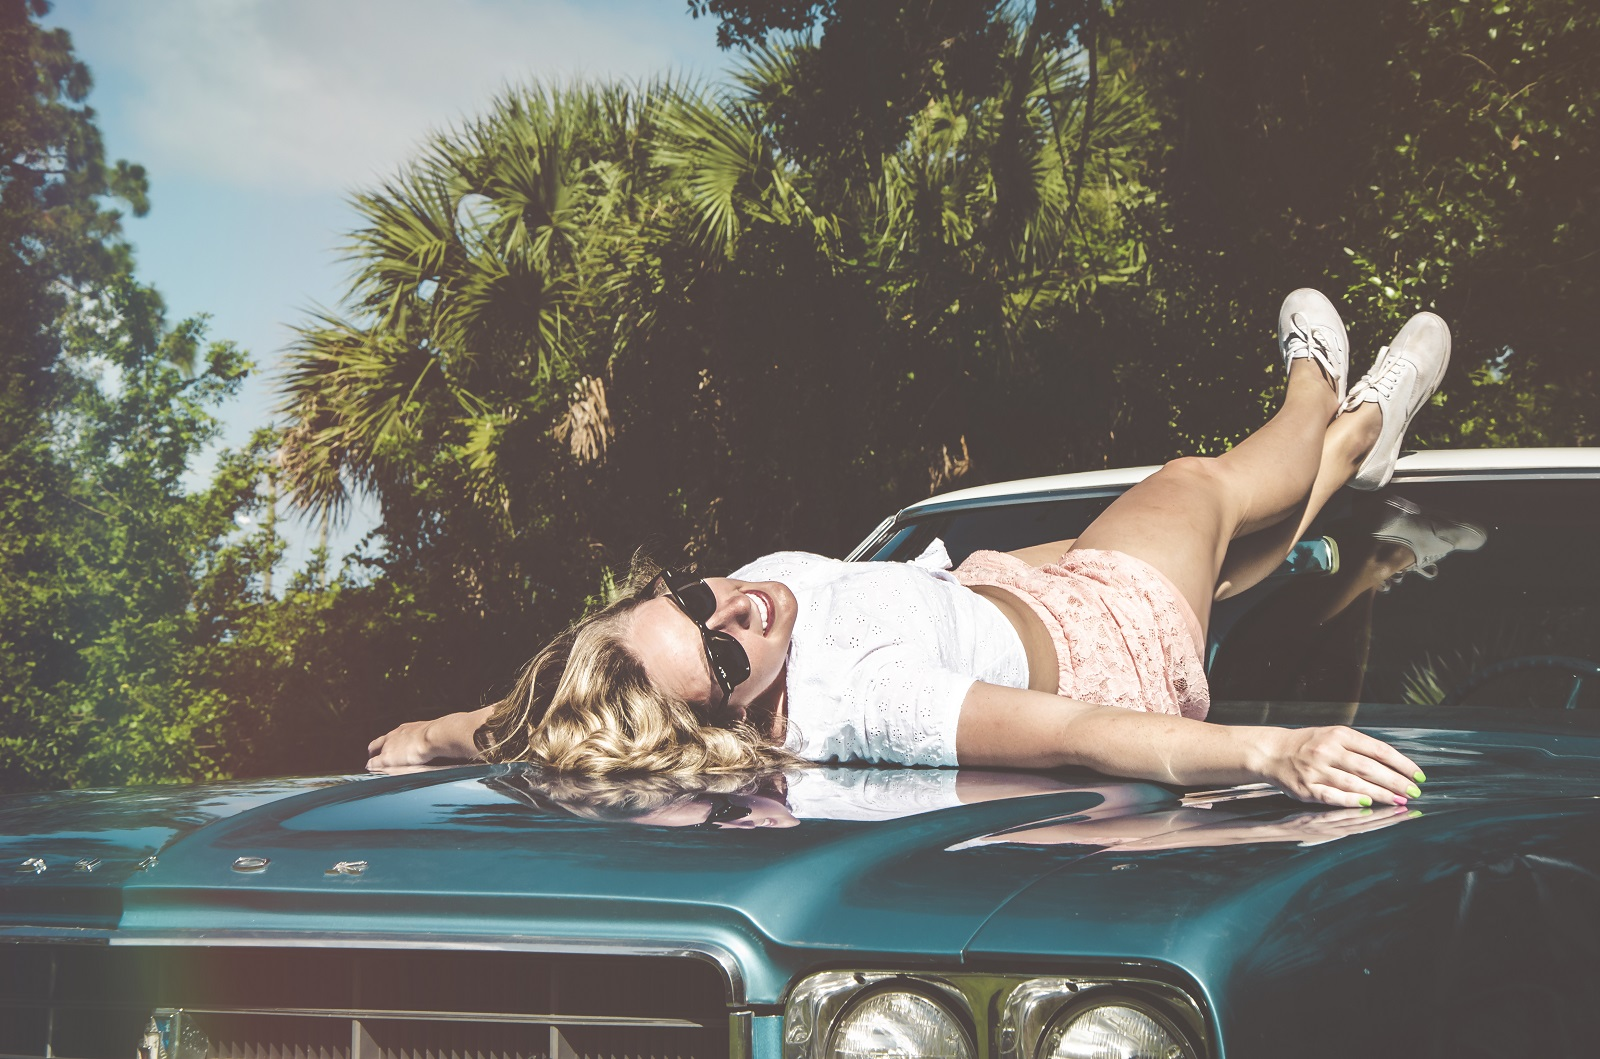 girl   laying   on blue car